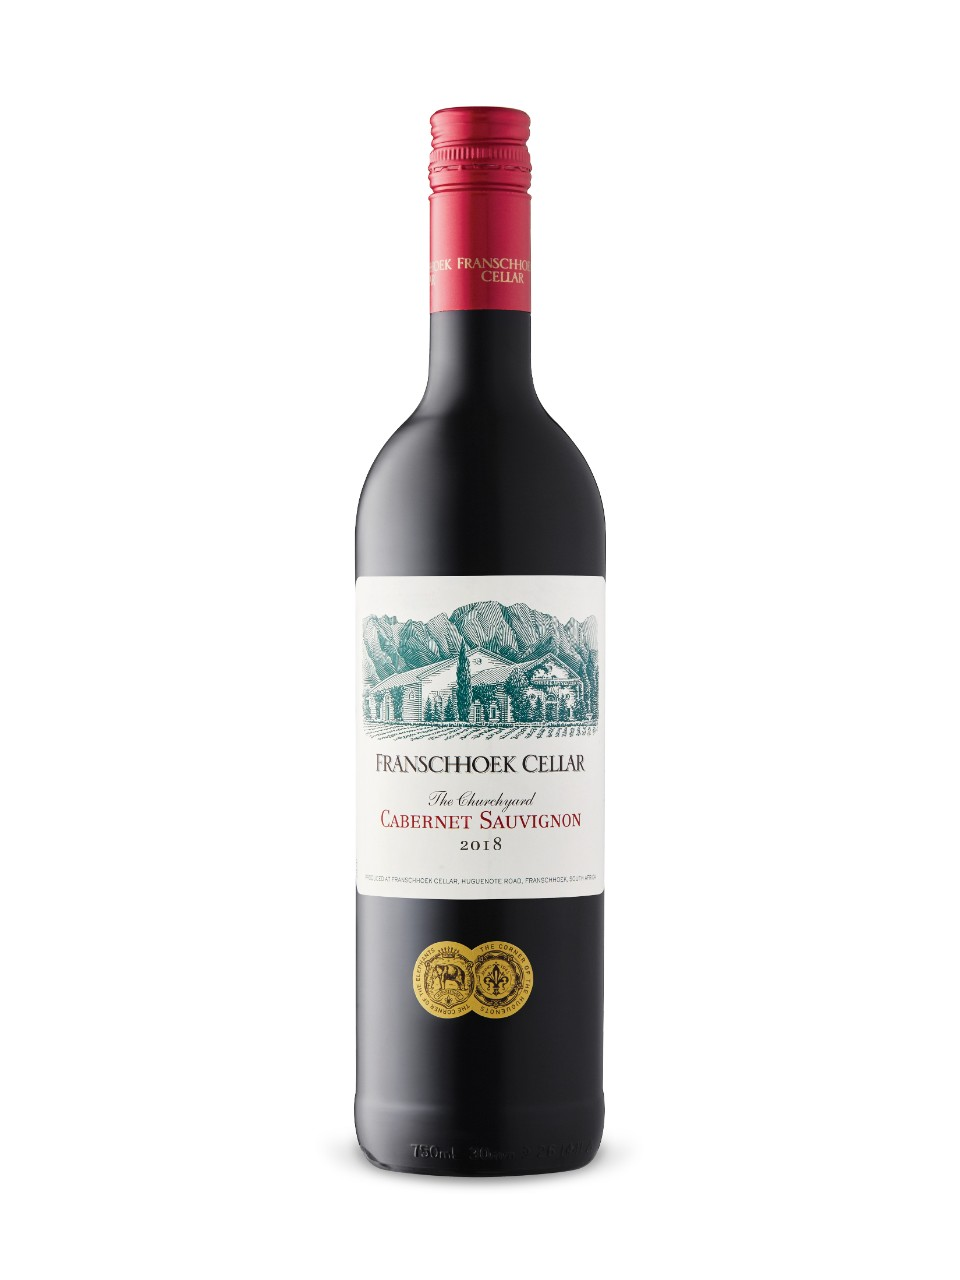 Franschhoek Cellar The Churchyard Cabernet Sauvignon 2018 from LCBO